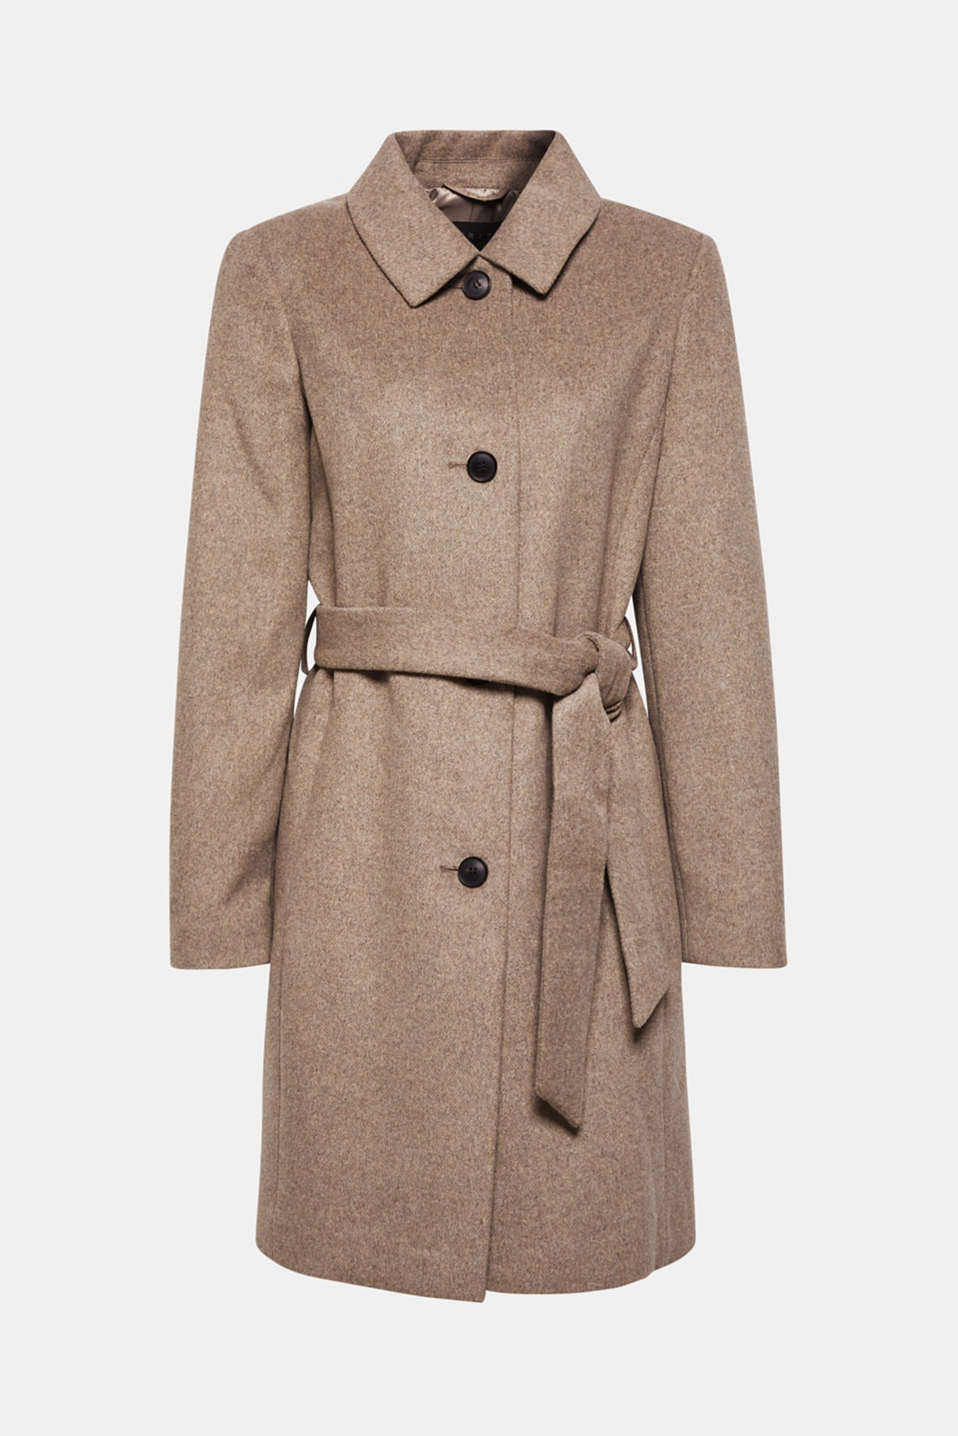 With wool: Coat with tie-around belt, LIGHT TAUPE 5, detail image number 8